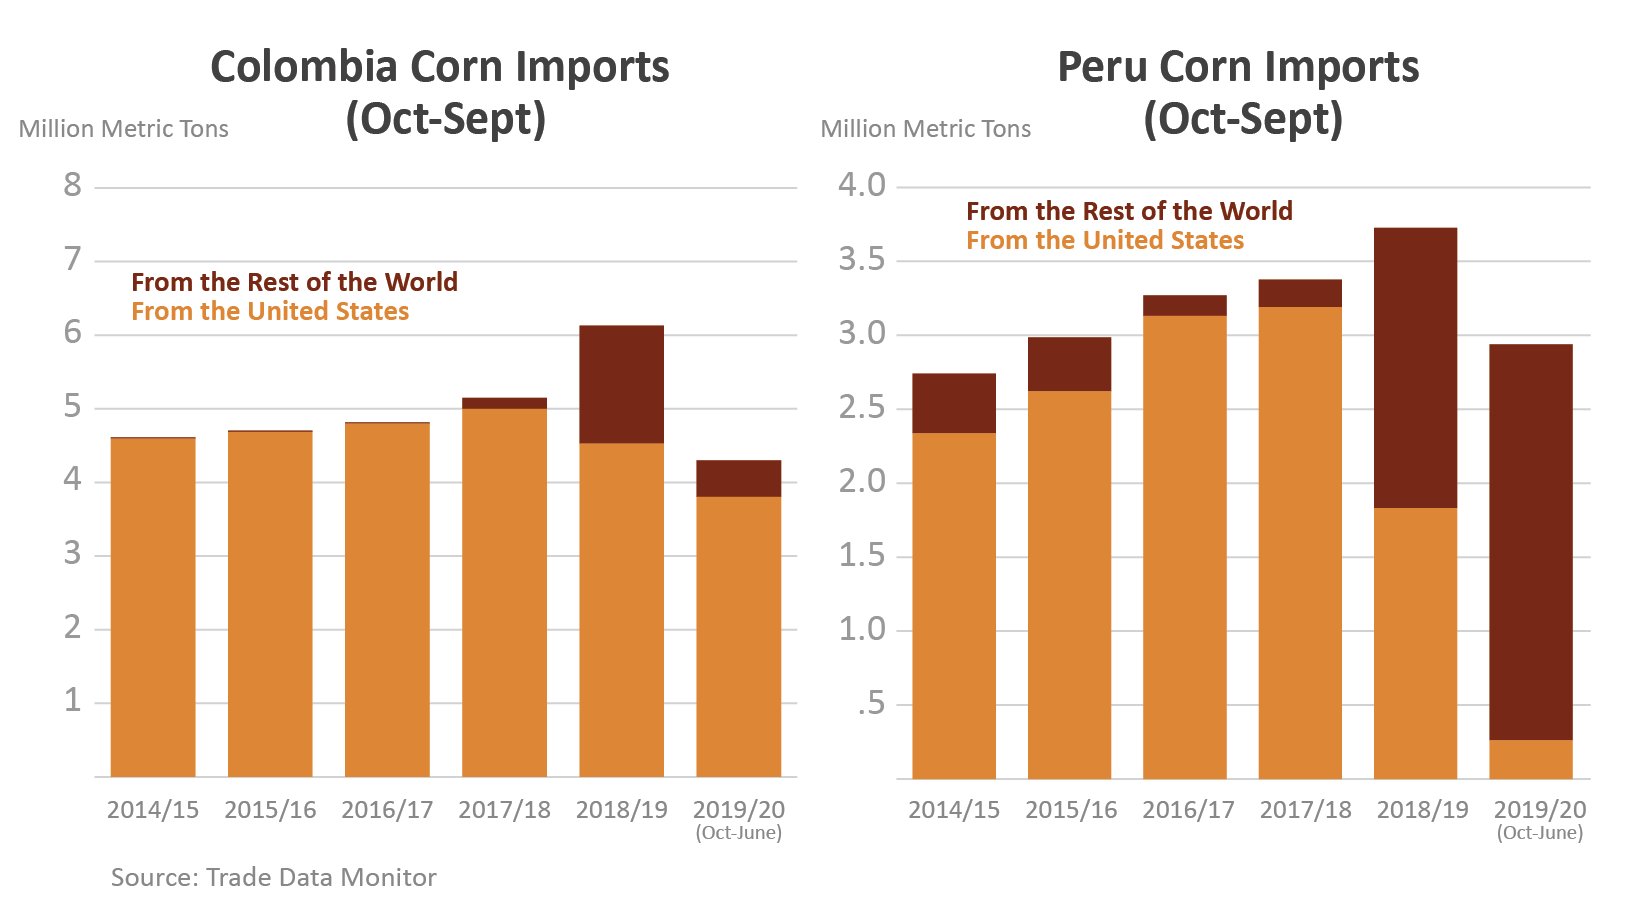 Two column charts showing total corn imports to Colombia and Peru, broken down by U.S. and rest of world.